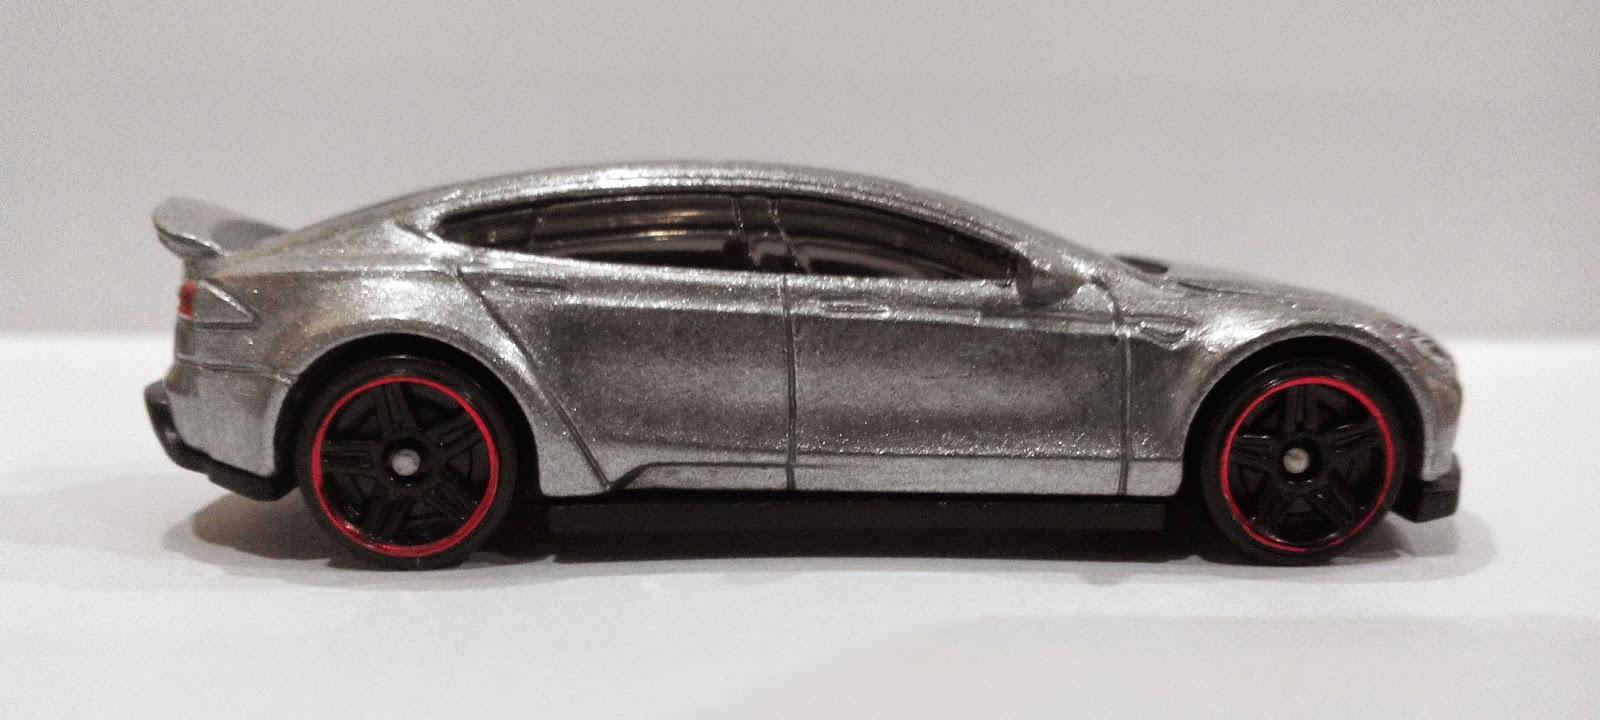 Tesla Model S Matchbox Car